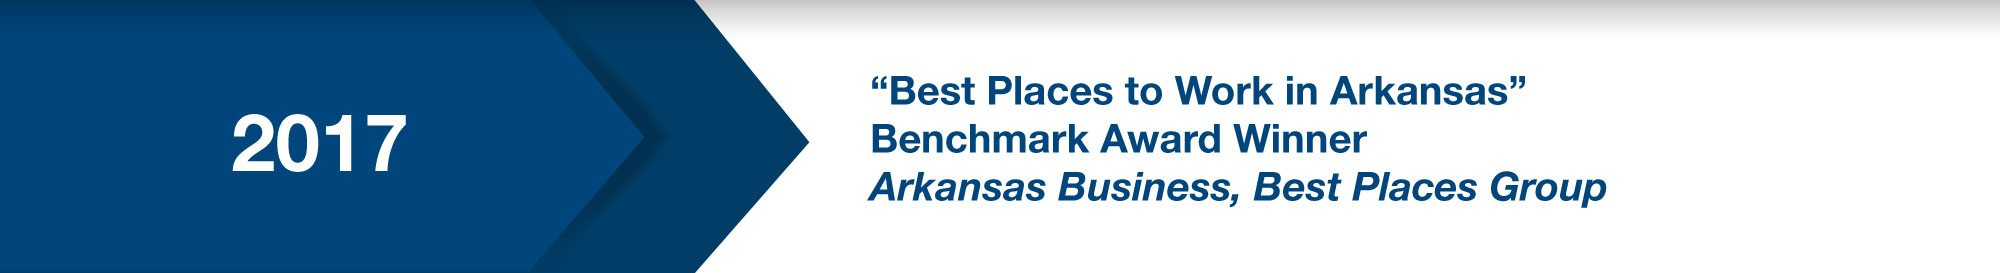 """Best Place to Work in Arkansas"" (2017)"